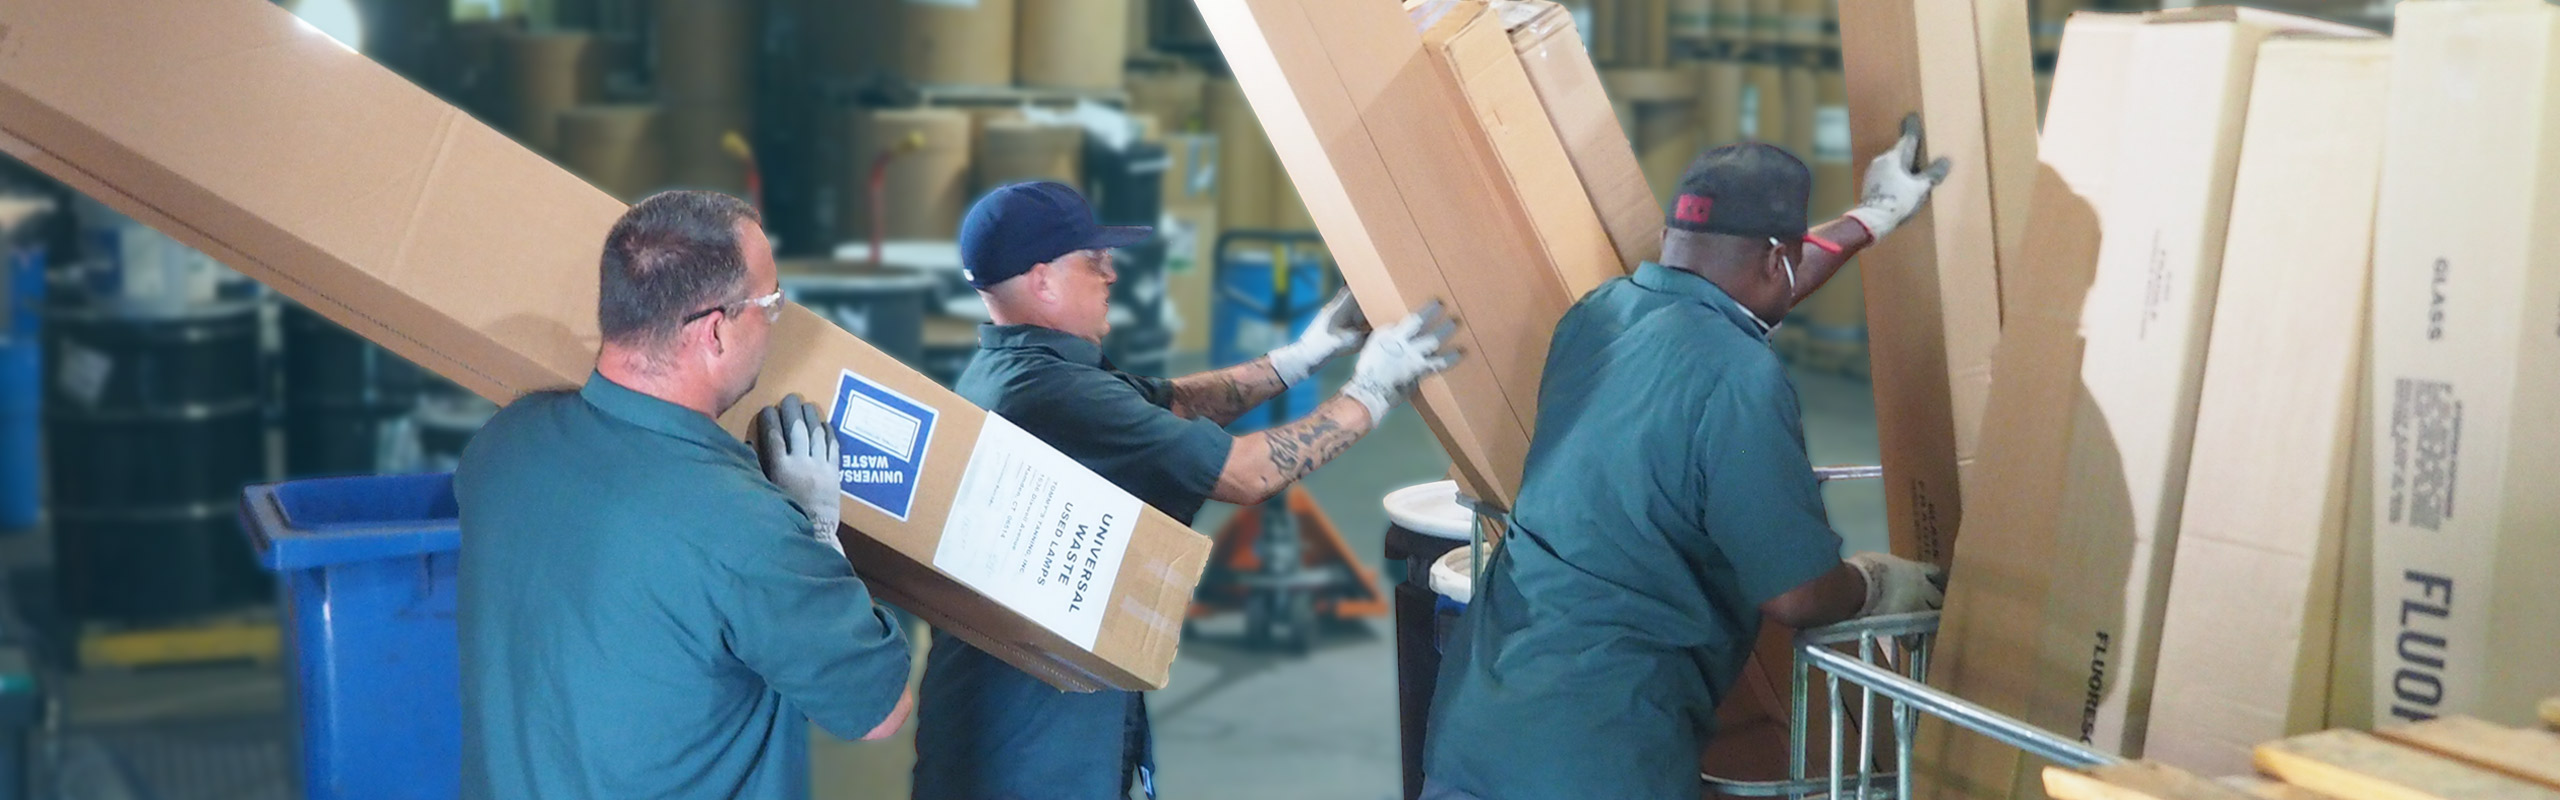 A picture of three NLR workers unloading boxes of spent fluorescent lamps in our UWH warehouse. NLR recycles fluorescent lamps and other universal waste.